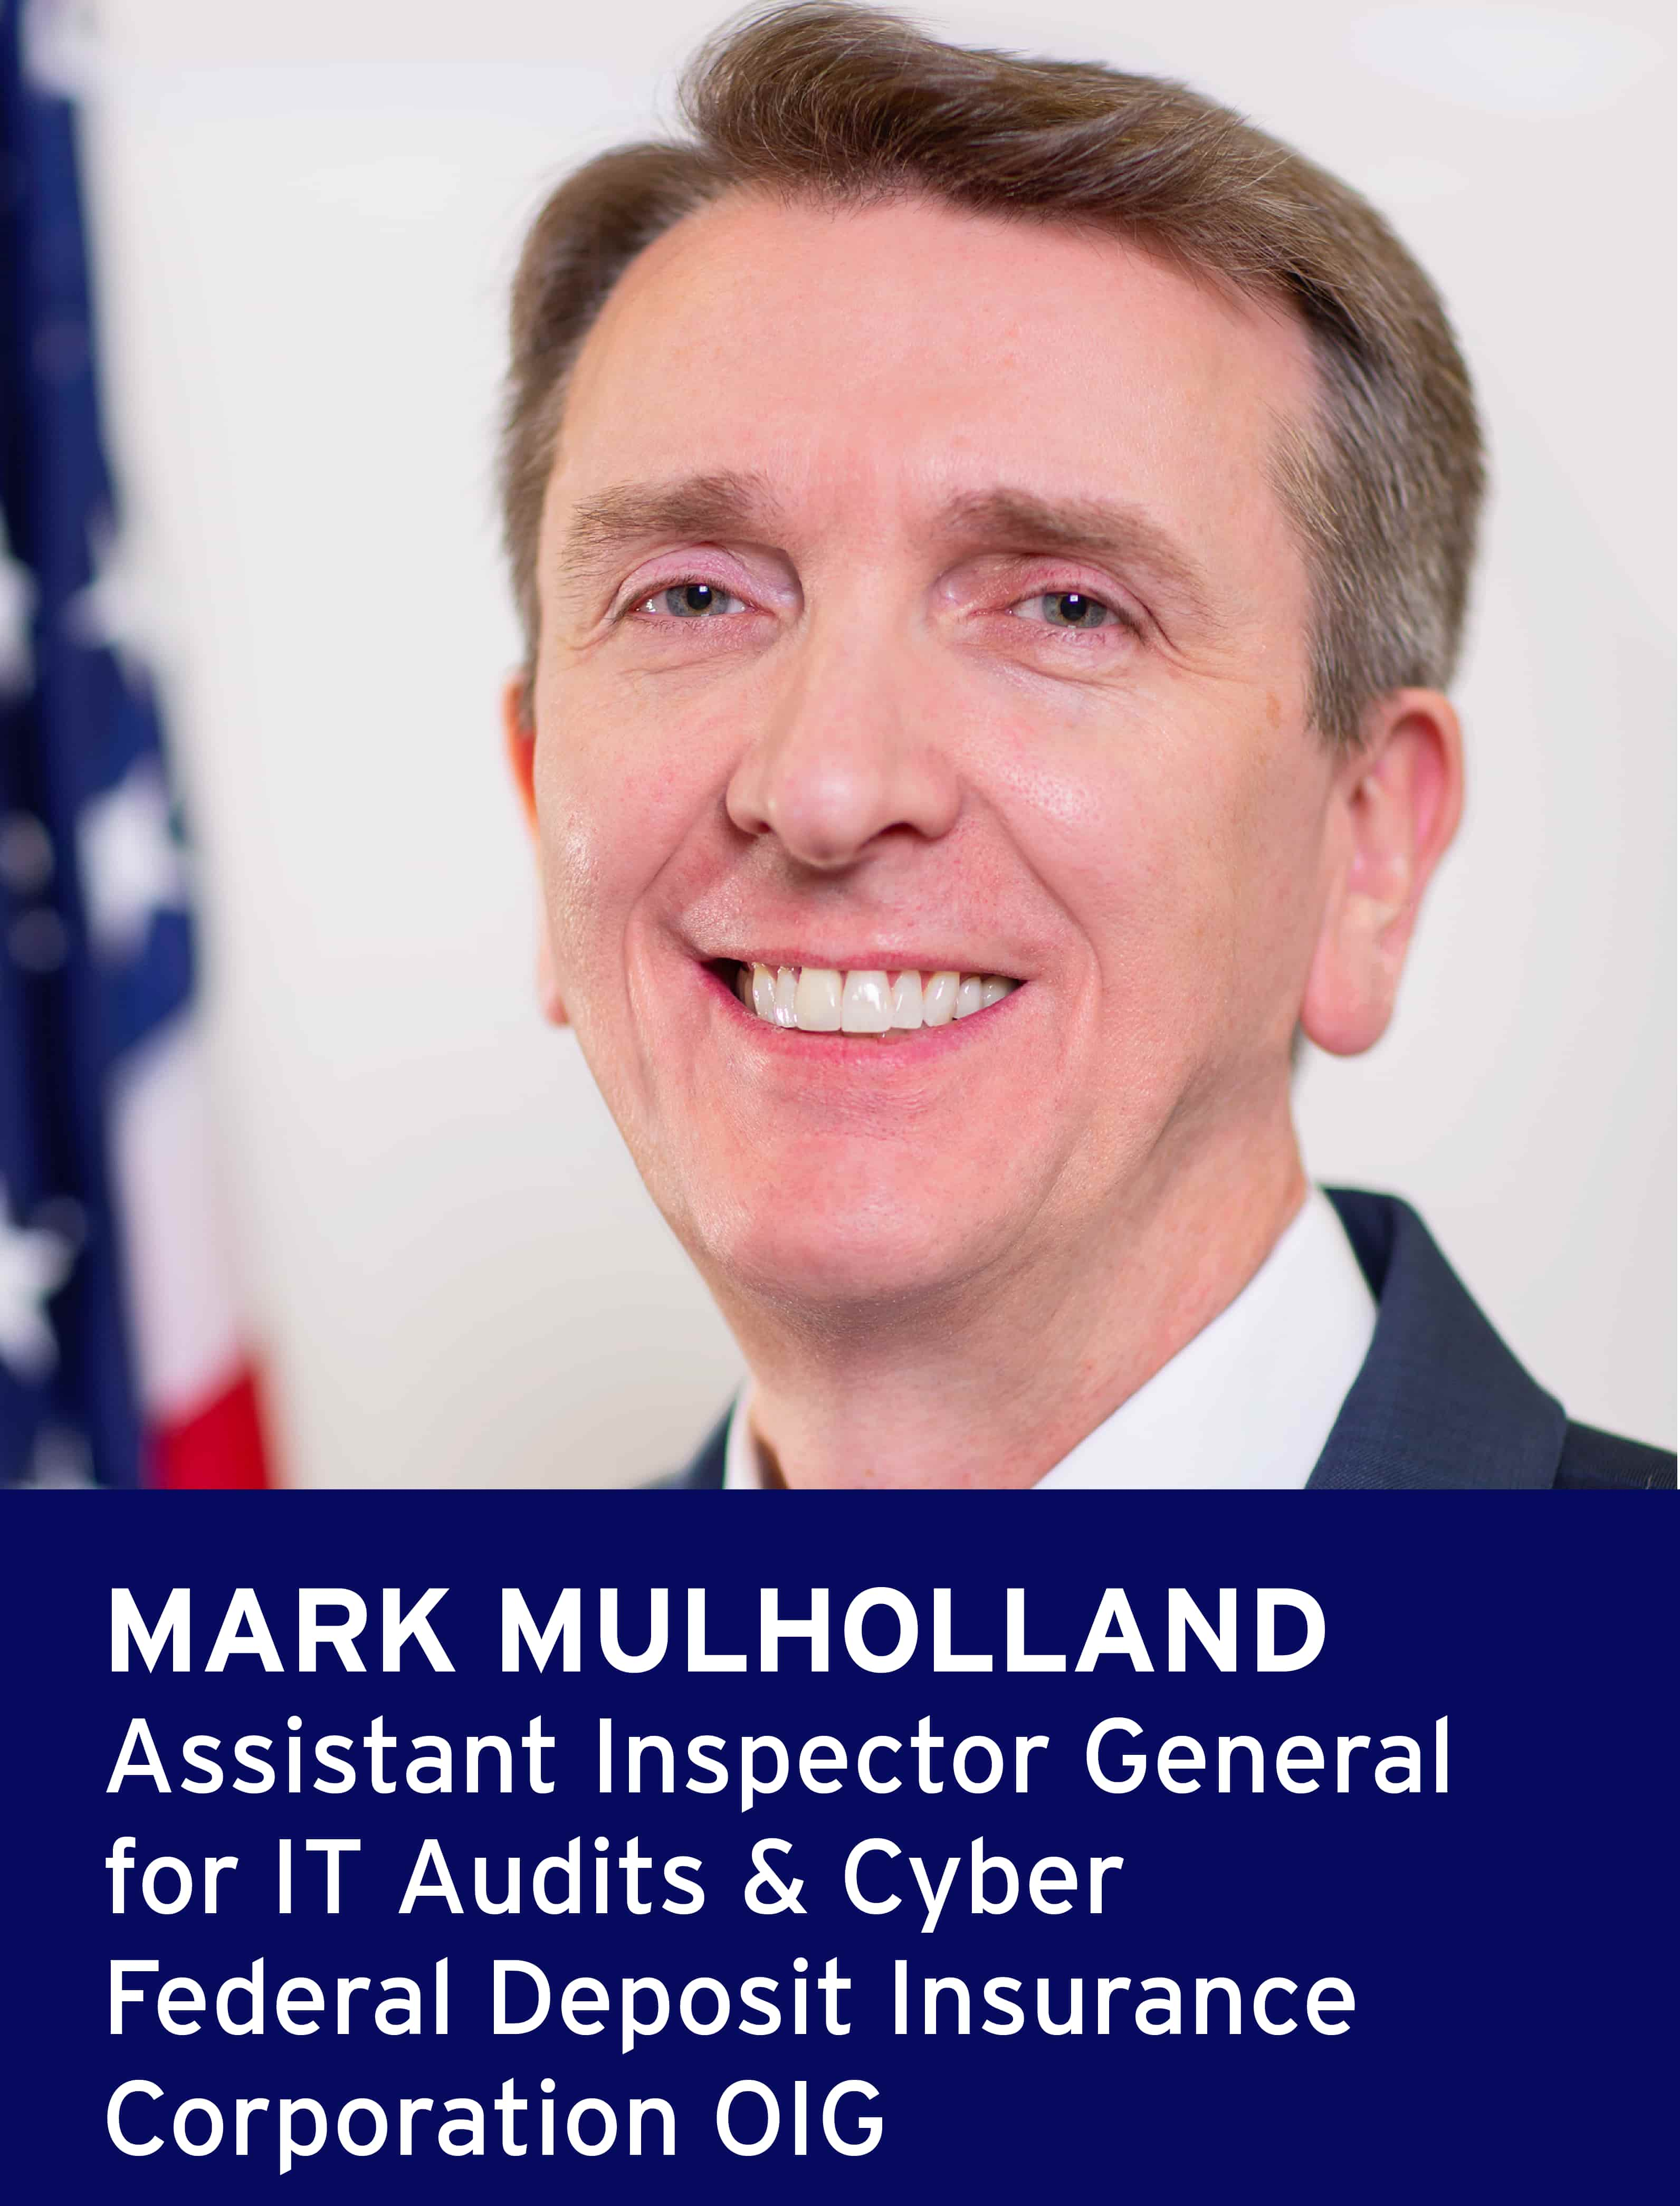 Mark Mullholland, Assistant Inspector General  for IT Audits & Cyber Federal Deposit Insurance  Corporation OIG